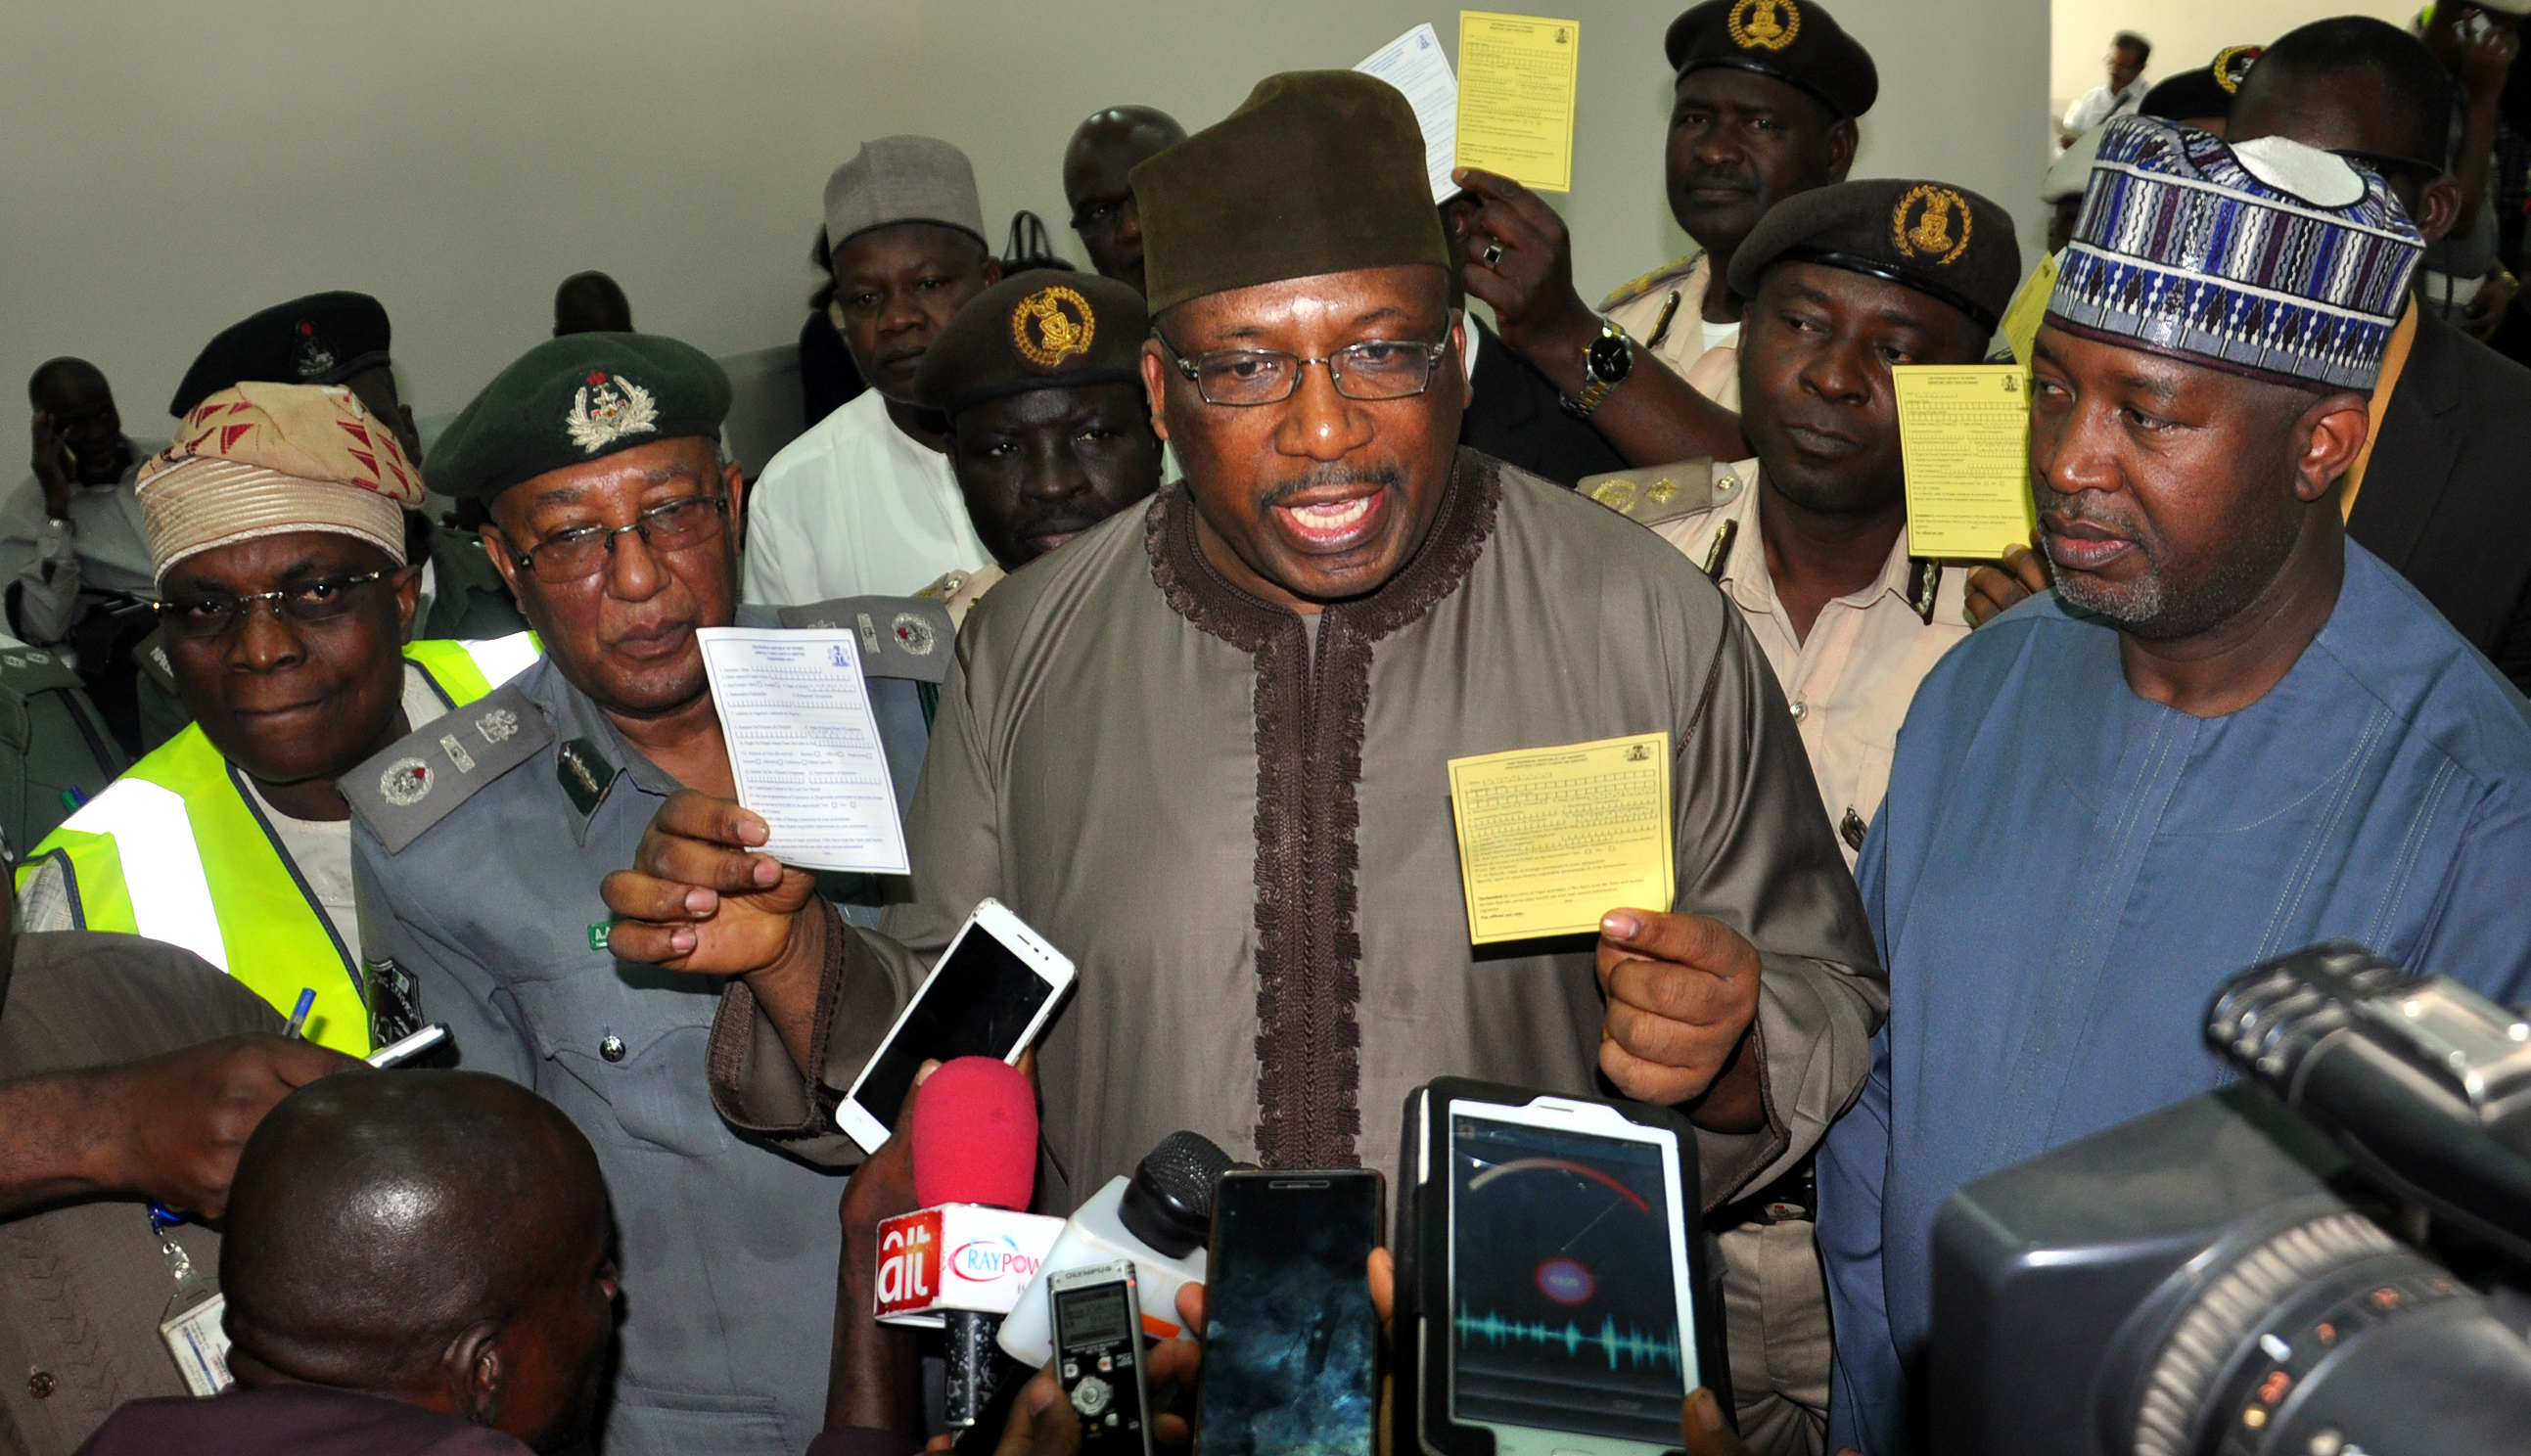 Minister of Internal Affairs, Alhaji Abdulrahman Danbazau, (2nd right) explaining some points to Journalists, with him are: from right, Minister of State, Aviation, Sen. Hadi Sirika, Assistant Comptroller General, Nigeria Customs, Alhaji Muhammed Ahmed and Managing Director/Chief Executive Officer, Med-View Airline Plc, Alhaji Muneer Bankole during an Inspection tour to Kaduna Local and International Airport on Thursday